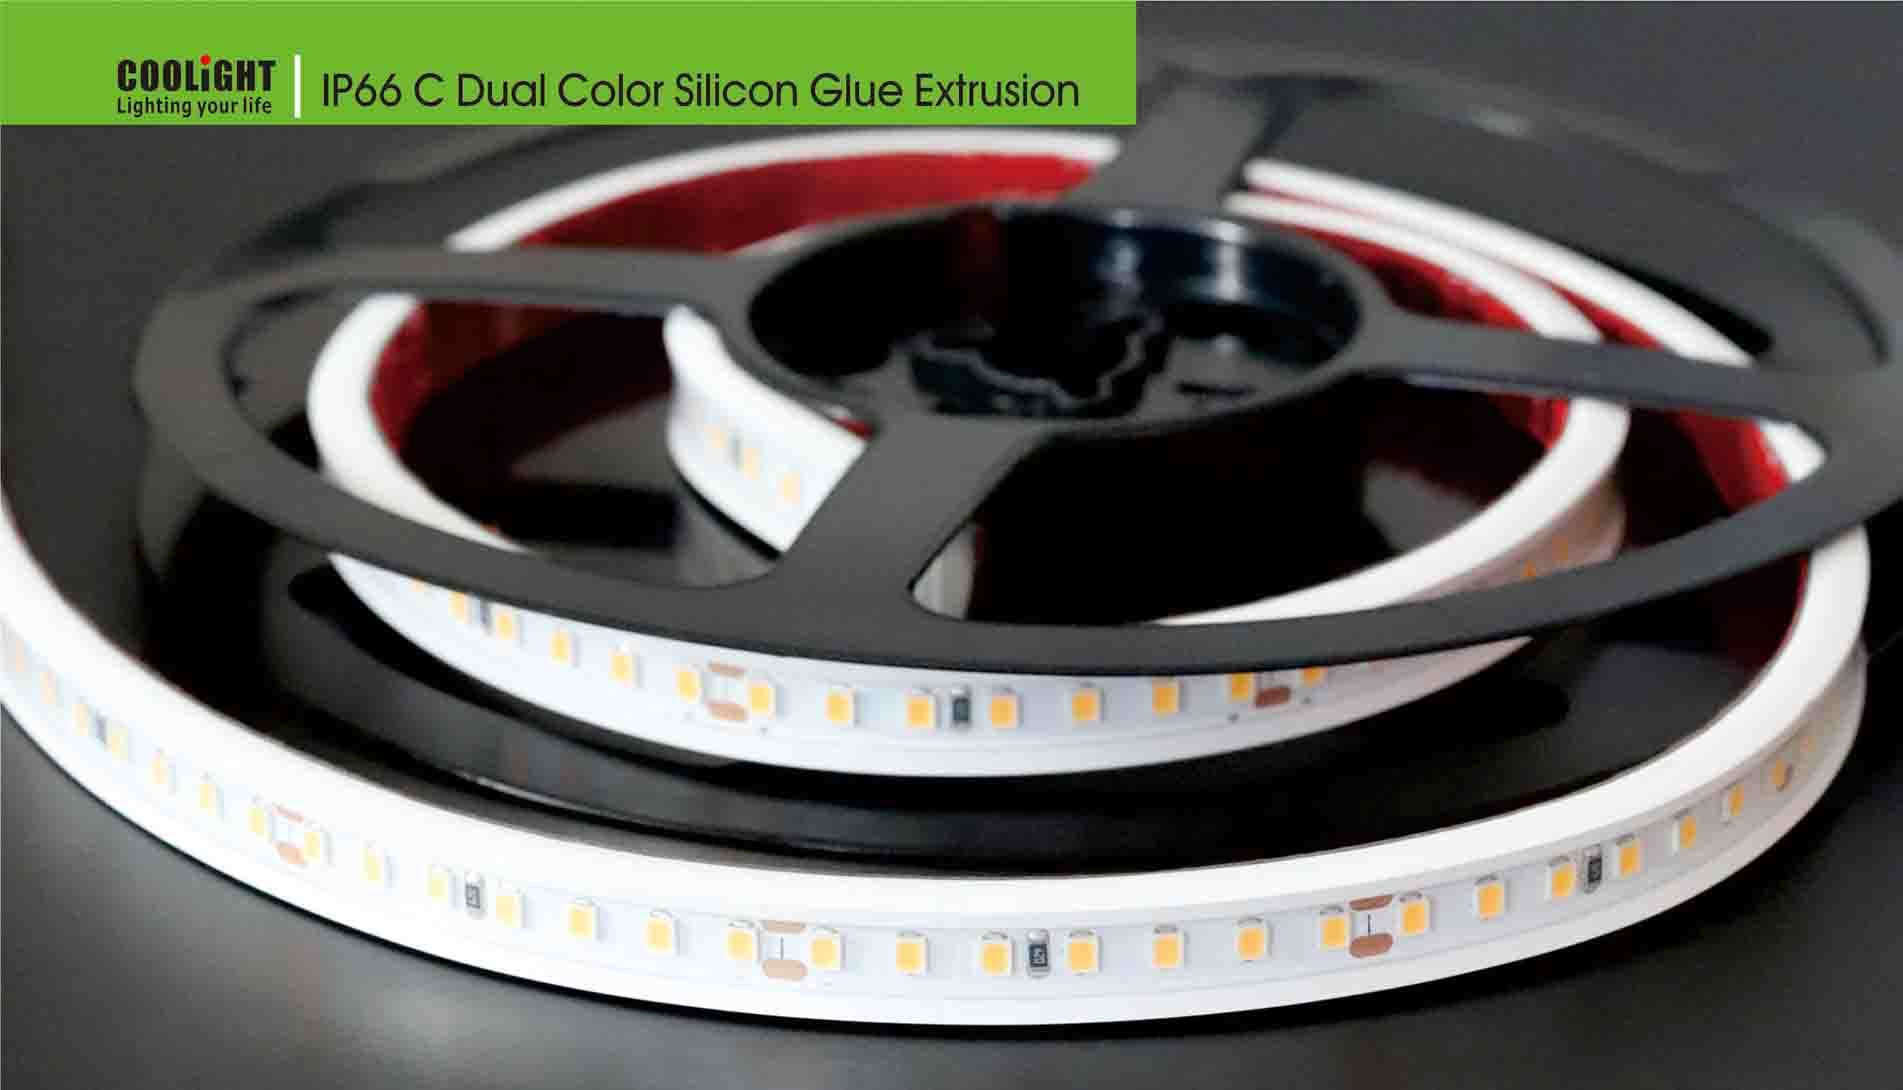 ip66 c dual color silicon glue extrusion